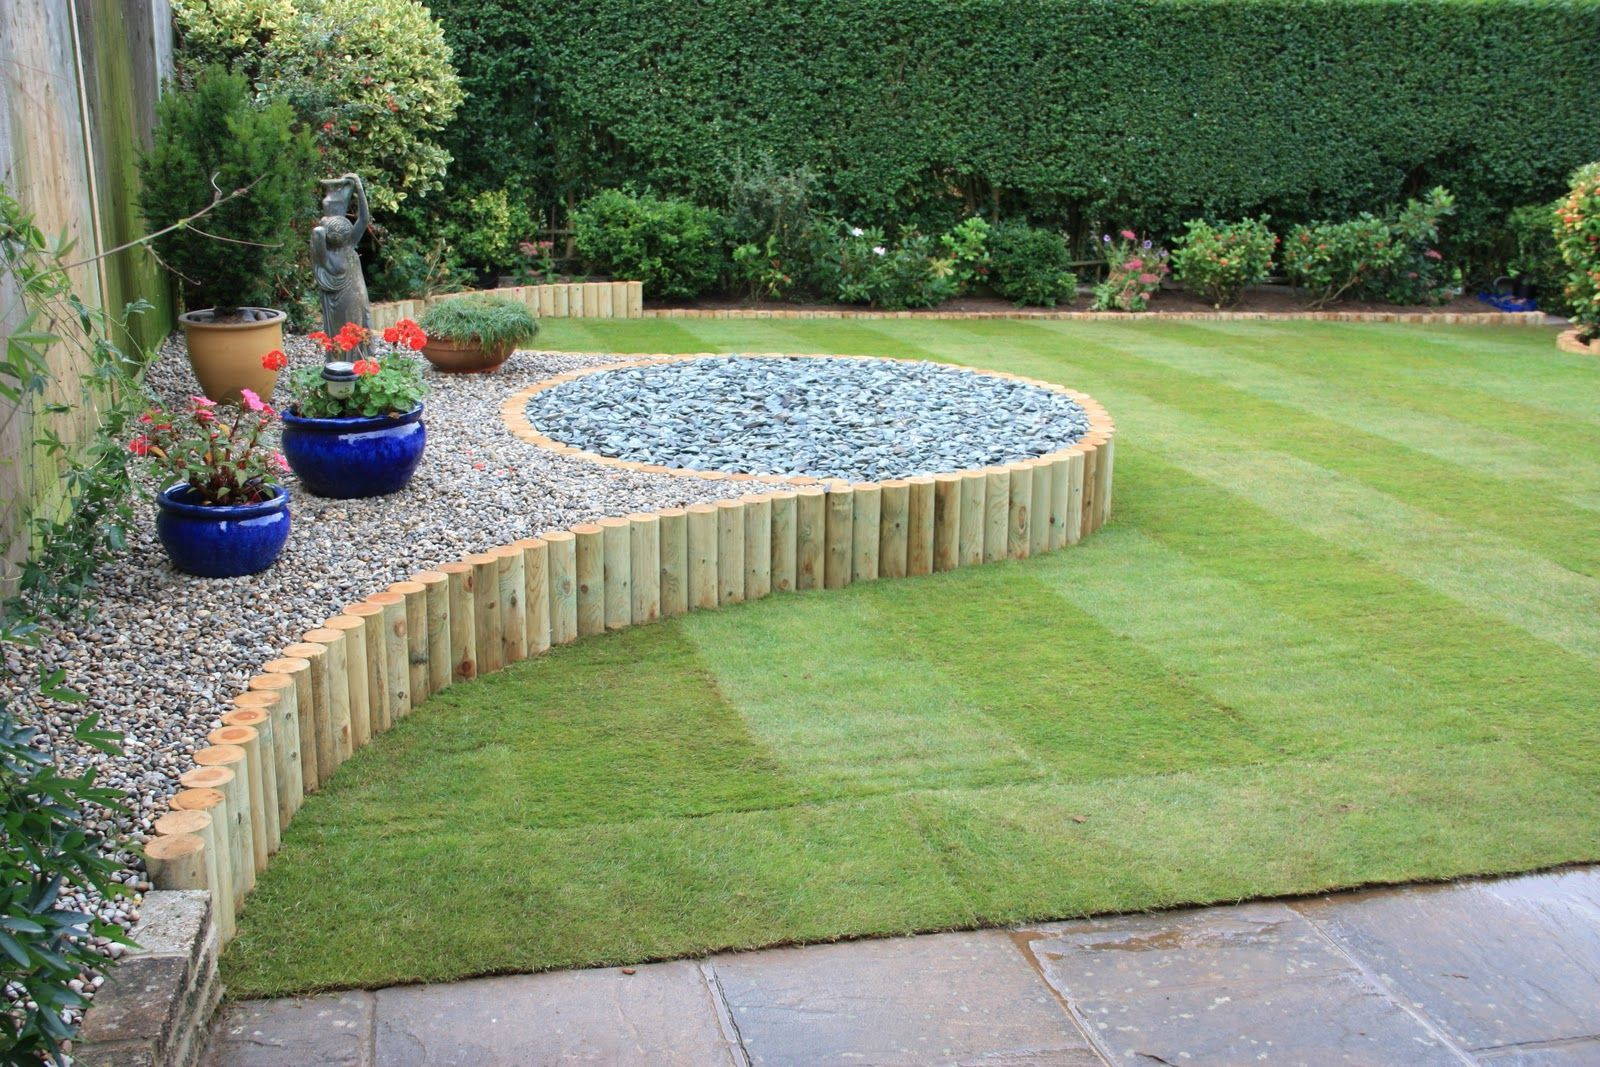 garden landscape design cool simply landscaping design for trend 2015 top residential - Garden Design Trends 2015